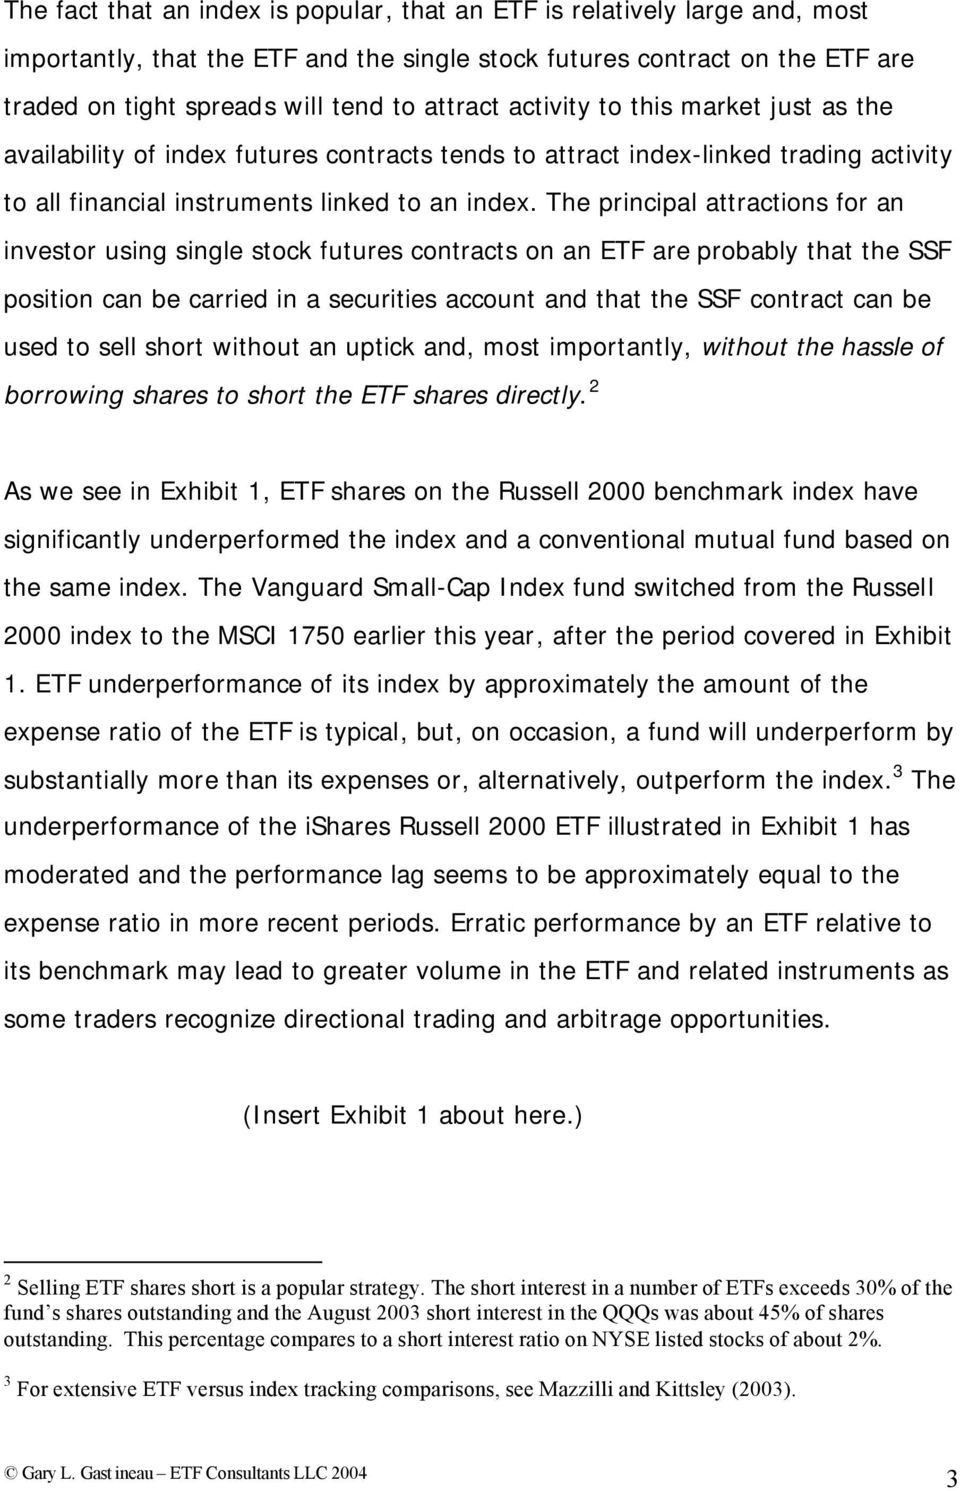 The principal attractions for an investor using single stock futures contracts on an ETF are probably that the SSF position can be carried in a securities account and that the SSF contract can be